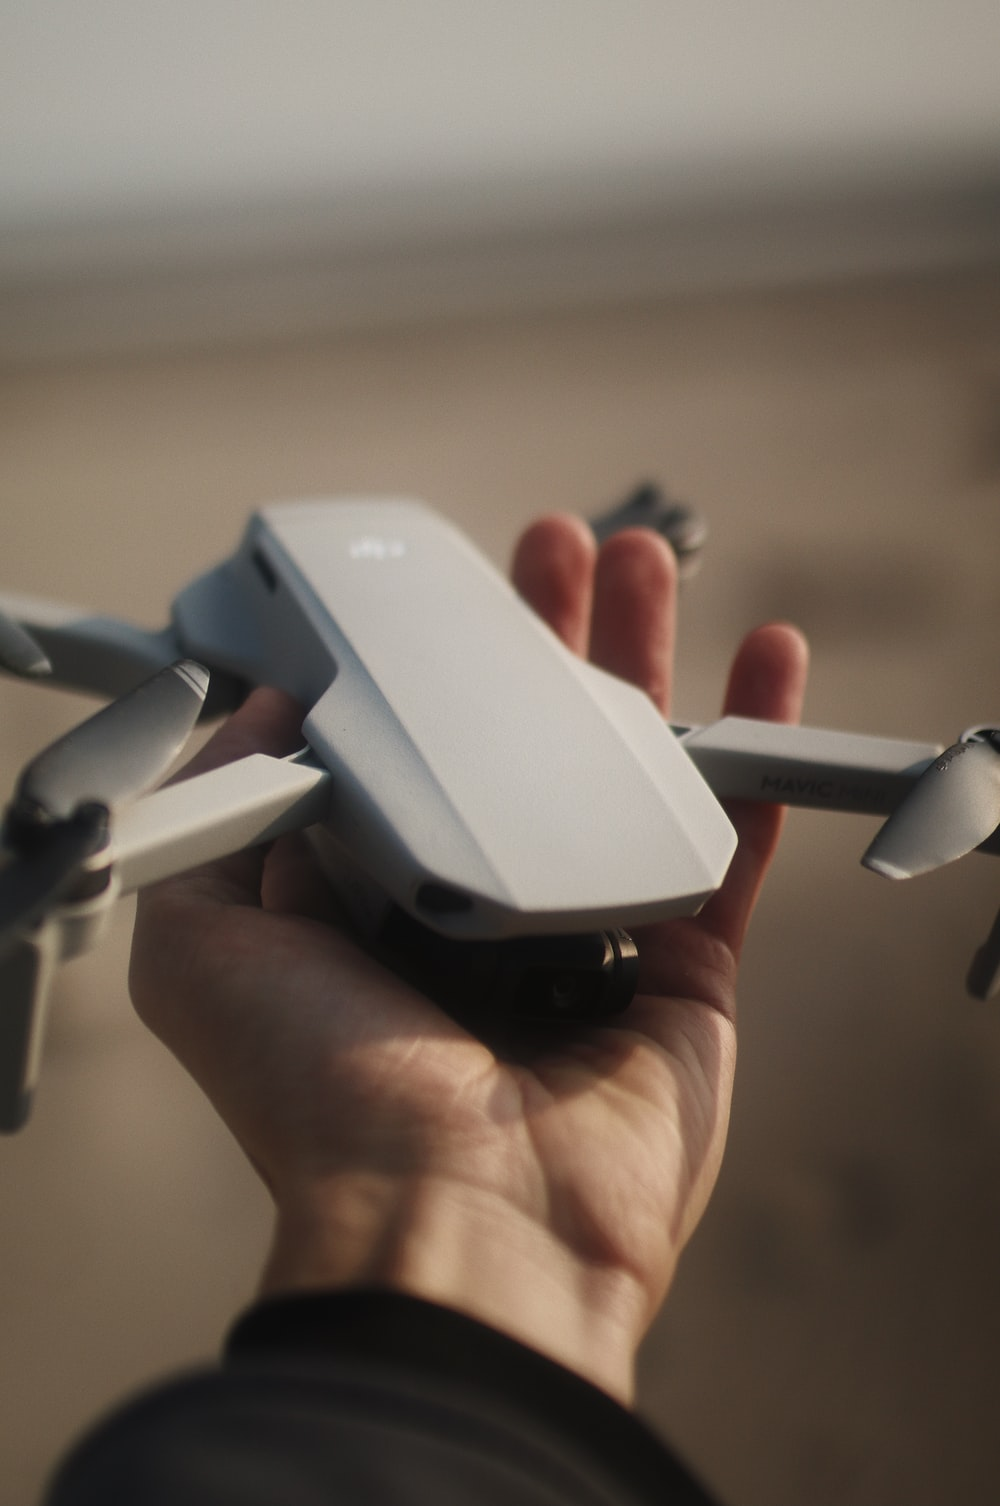 person holding white and black drone